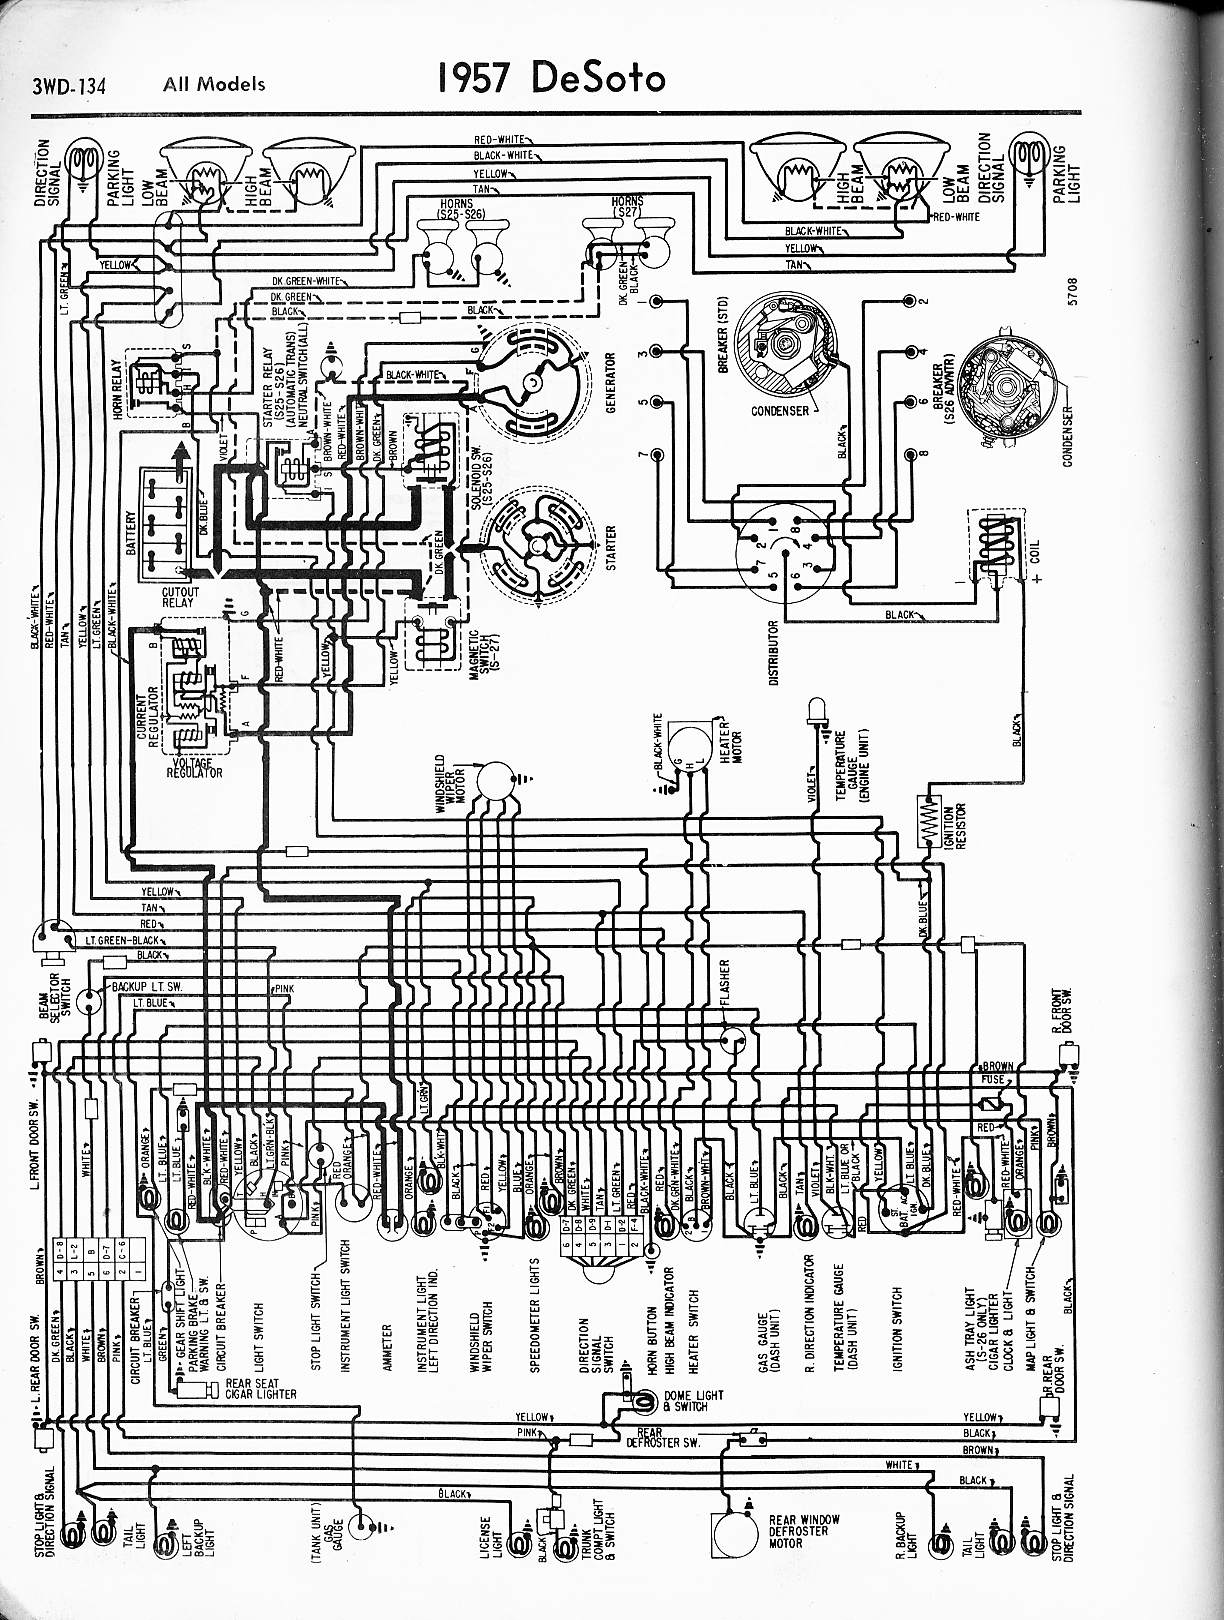 hight resolution of 1951 desoto wiring diagram electrical wiring diagrams rh 24 phd medical faculty hamburg de 1998 lincoln